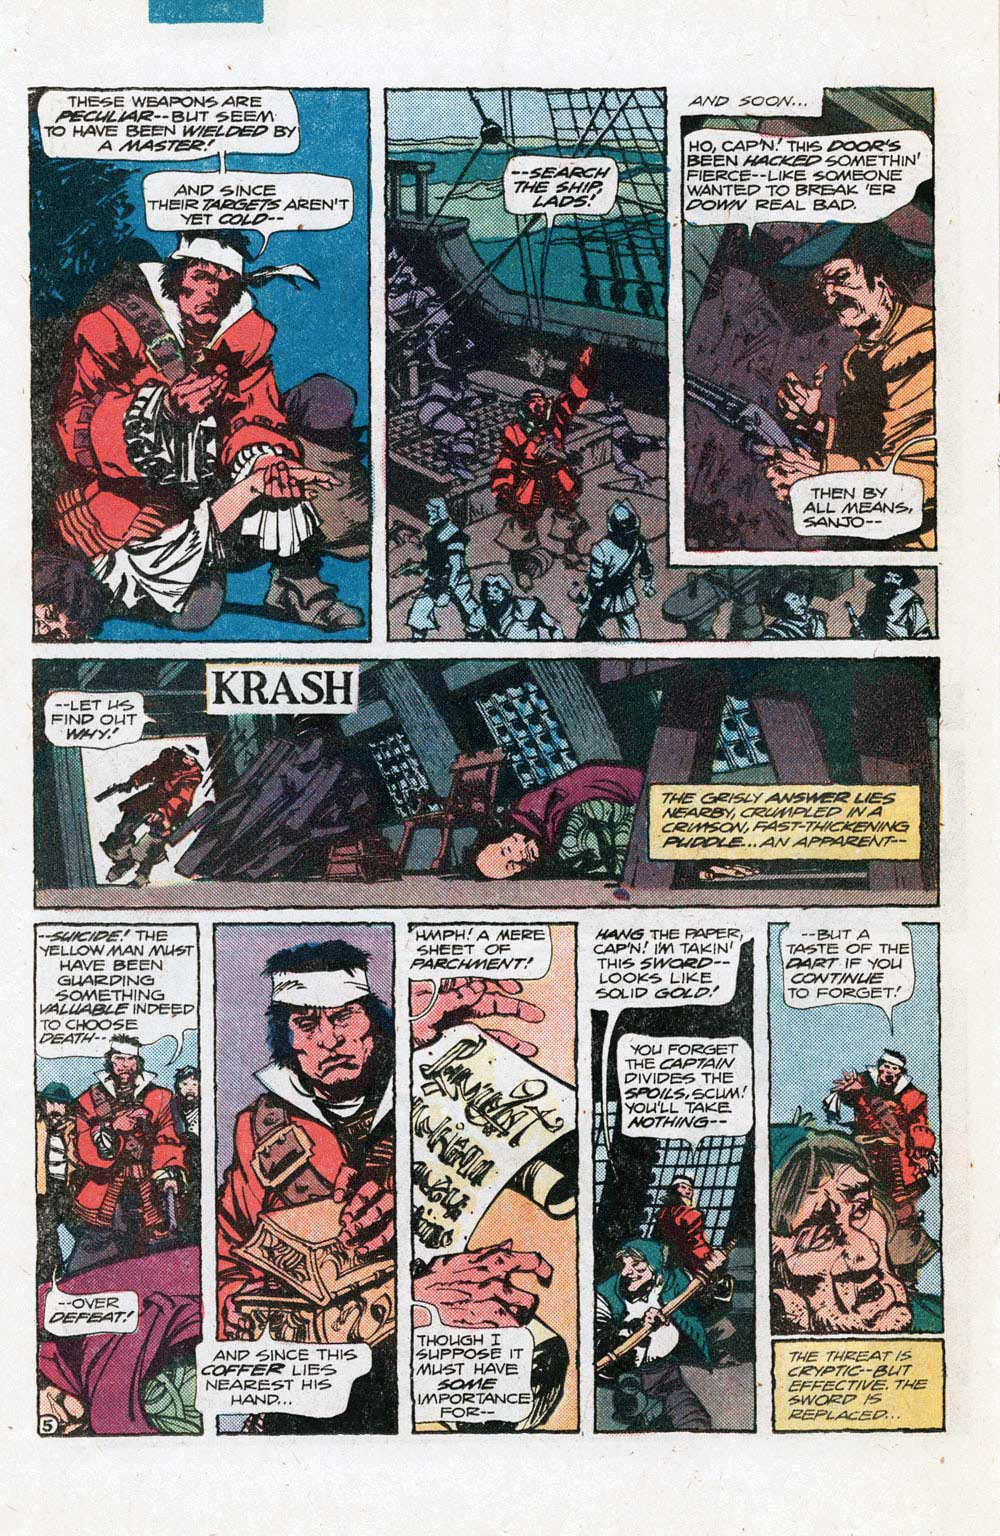 Unknown Soldier #254 (1981) by David Michelinie and Walt Simonson